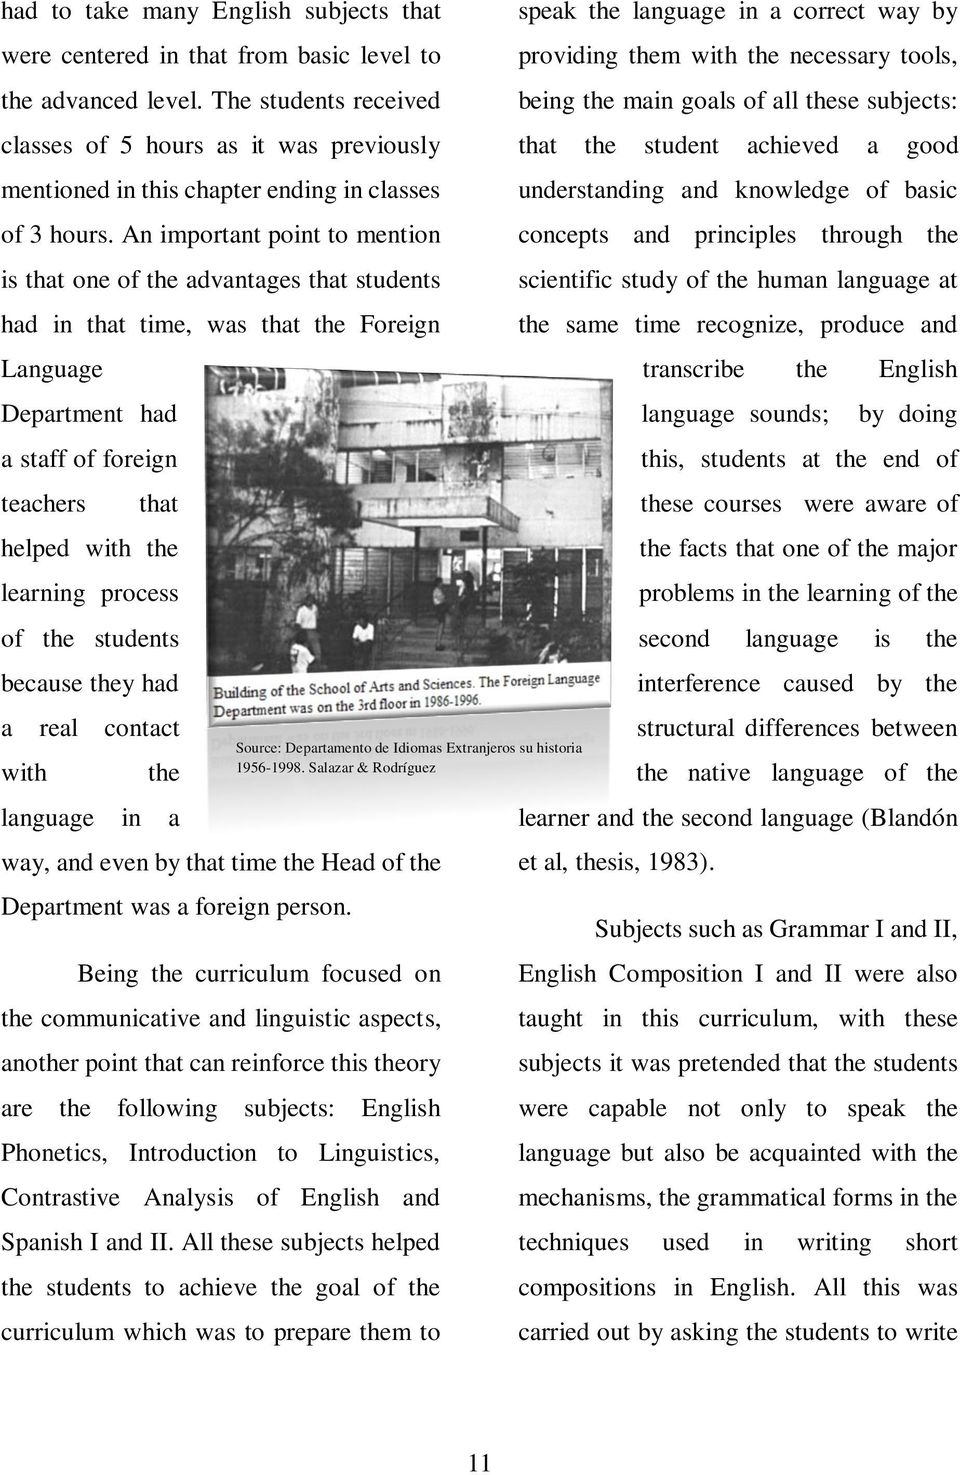 An important point to mention is that one of the advantages that students had in that time, was that the Foreign Language Department had a staff of foreign teachers that helped with the learning